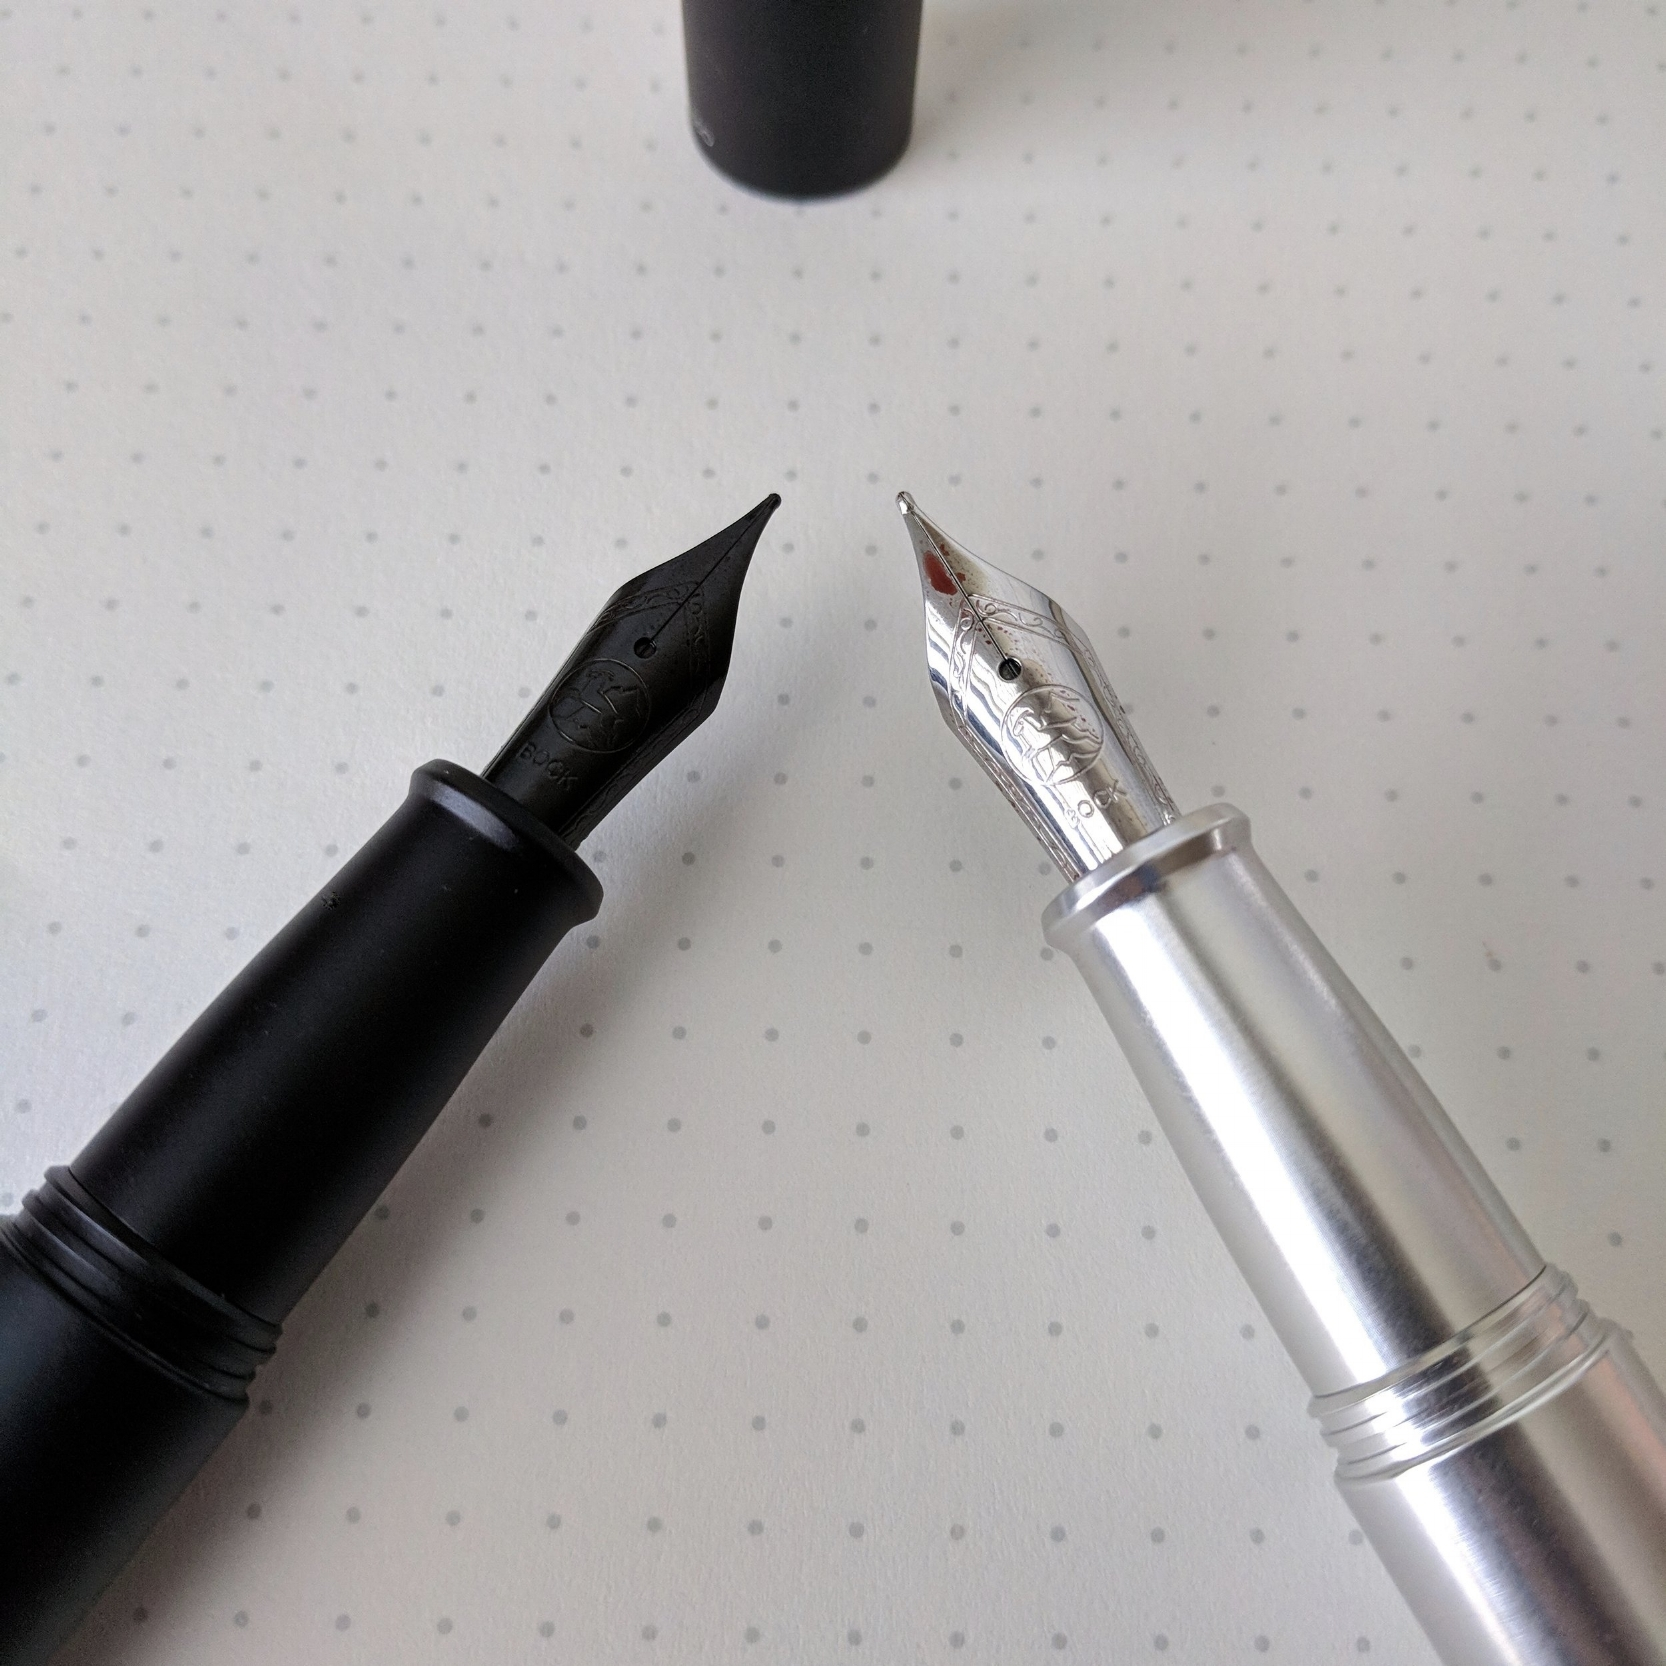 I don't know if Ensso tunes their nibs prior to shipping, but the Bock nibs on my two PIUMA pens are some of the best Bocks that I've used. The ink flow is steady with no starvation issues that you sometimes see with the standard Bock feed.